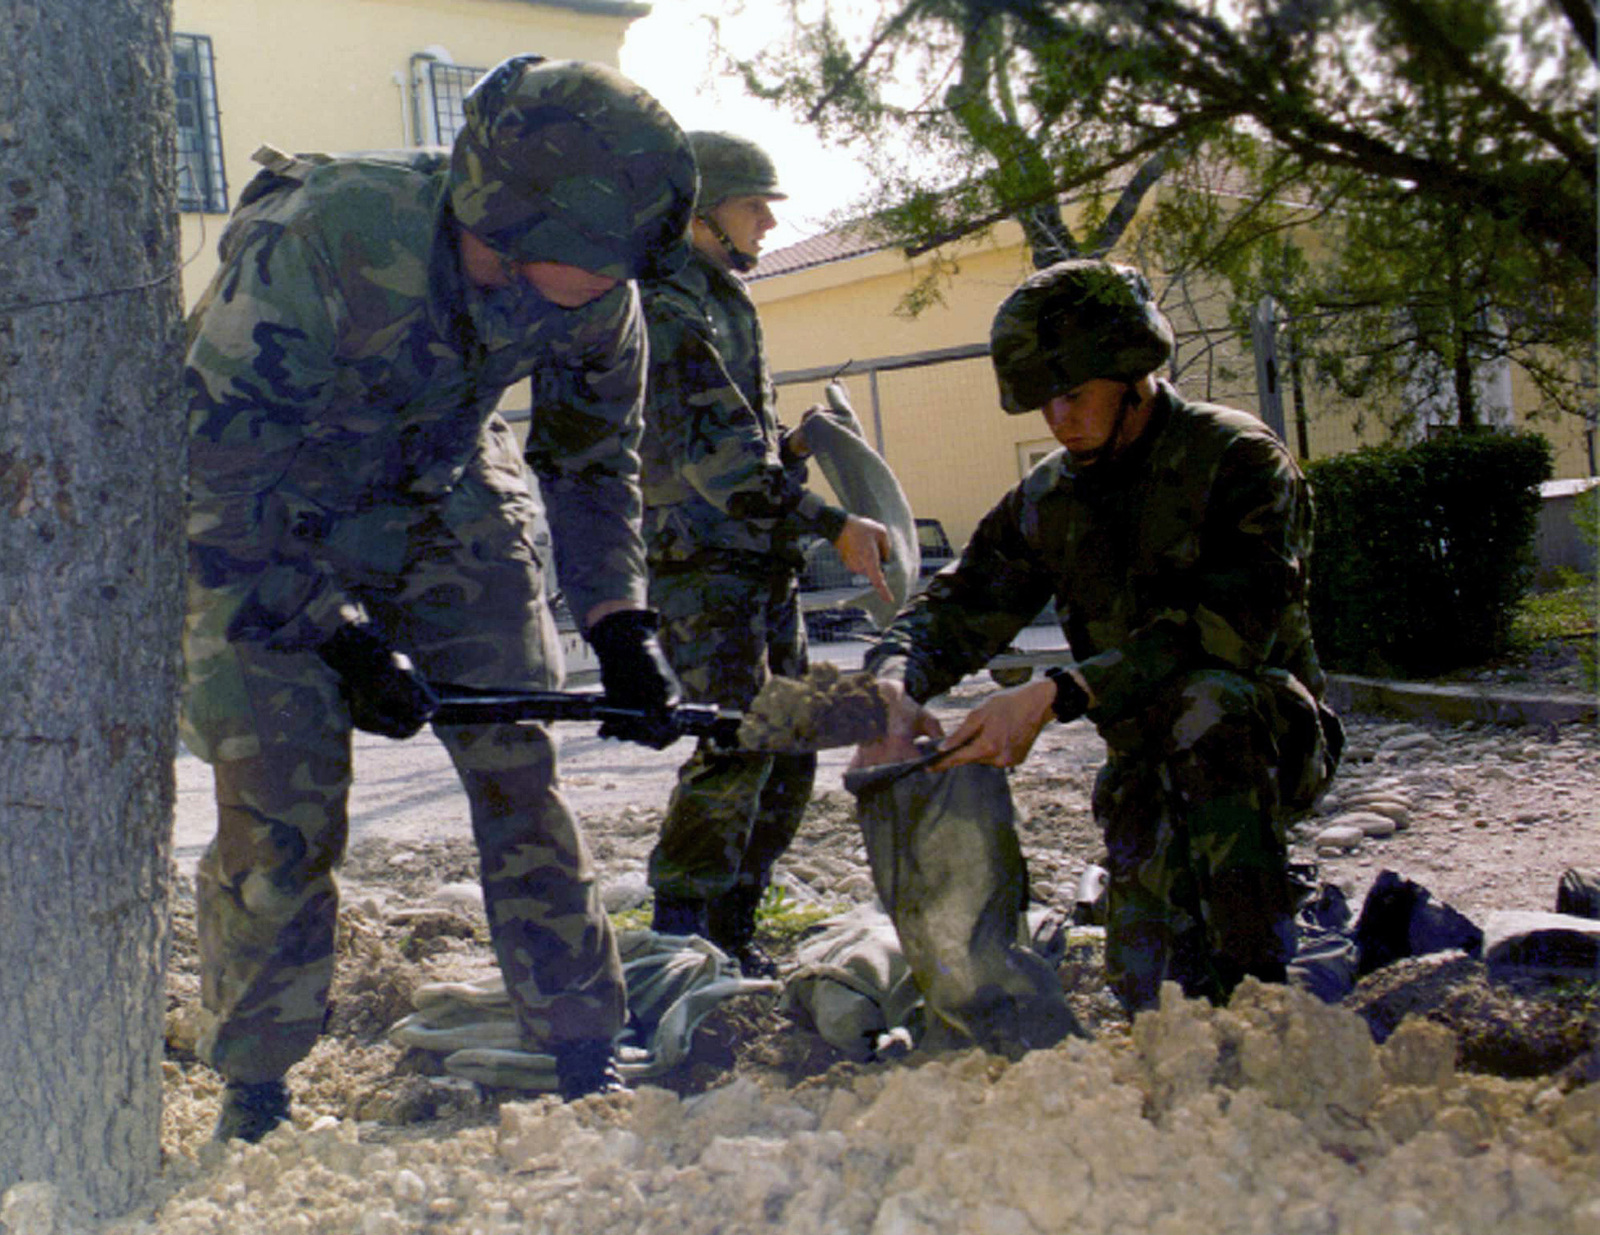 Marines from Charlie Company, 1ST Batttalion, 8th Marines, fill sandbags to reinforce defensive positions inside the compound at the US Embassy in Tirana, Albania, during Operation SILVER WAKE. The 26th Marine Expeditionary Unit (Special Operations Capable) (MEU (SOC)) was called upon to perform a NEO (Non-combatant Evacuation Operation) of US citizens that desired to leave Albania, due to the current civil strife